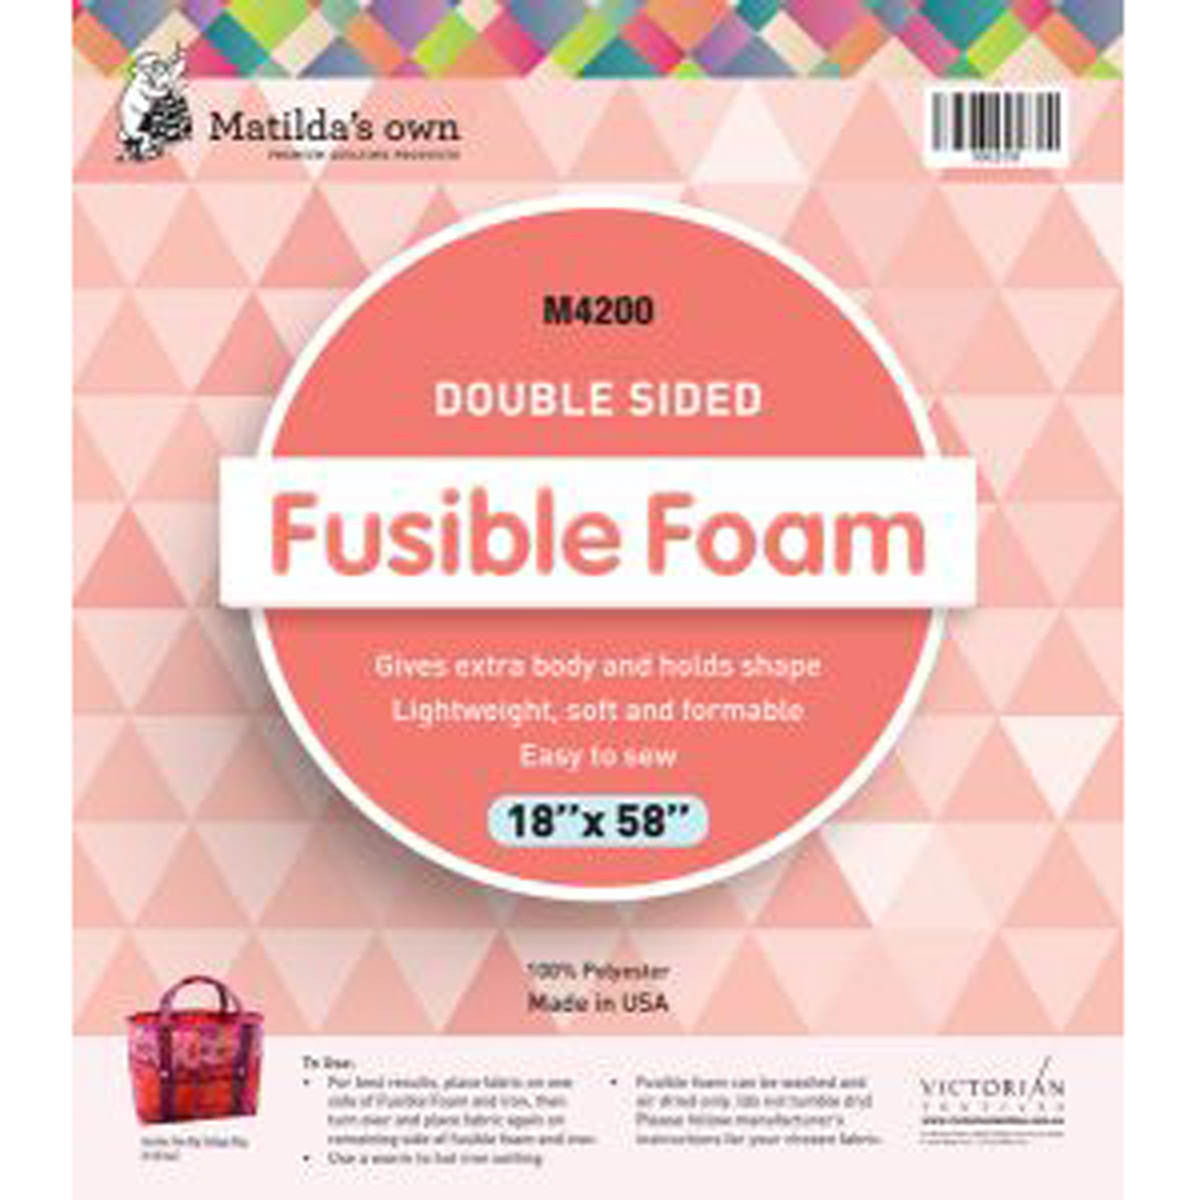 "Fusible Foam *Double- Sided - Matilda's Own - 36"" x 58"""